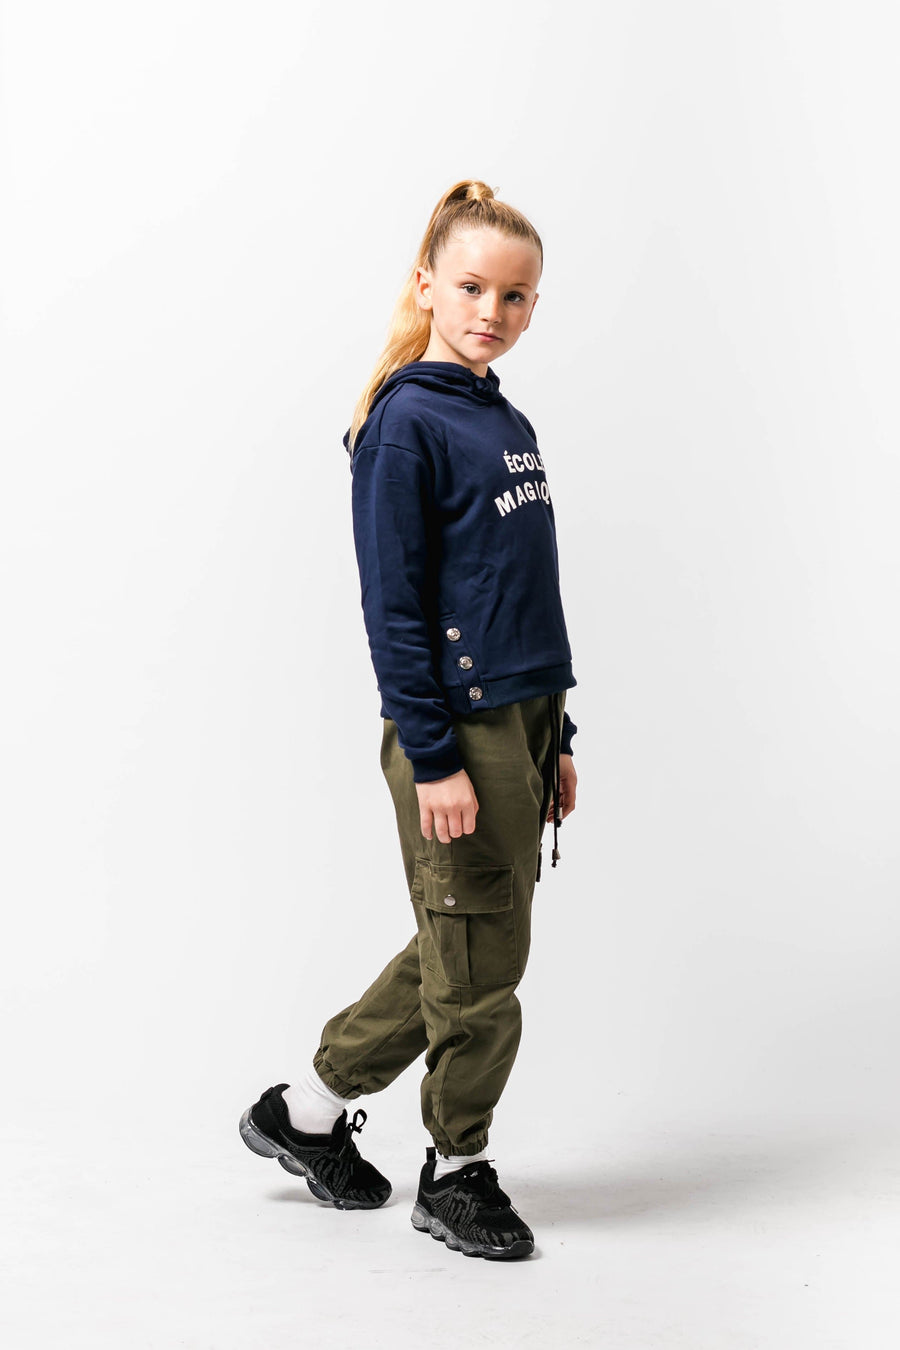 Hannah Combat Trouders In Khaki From Little Attitude